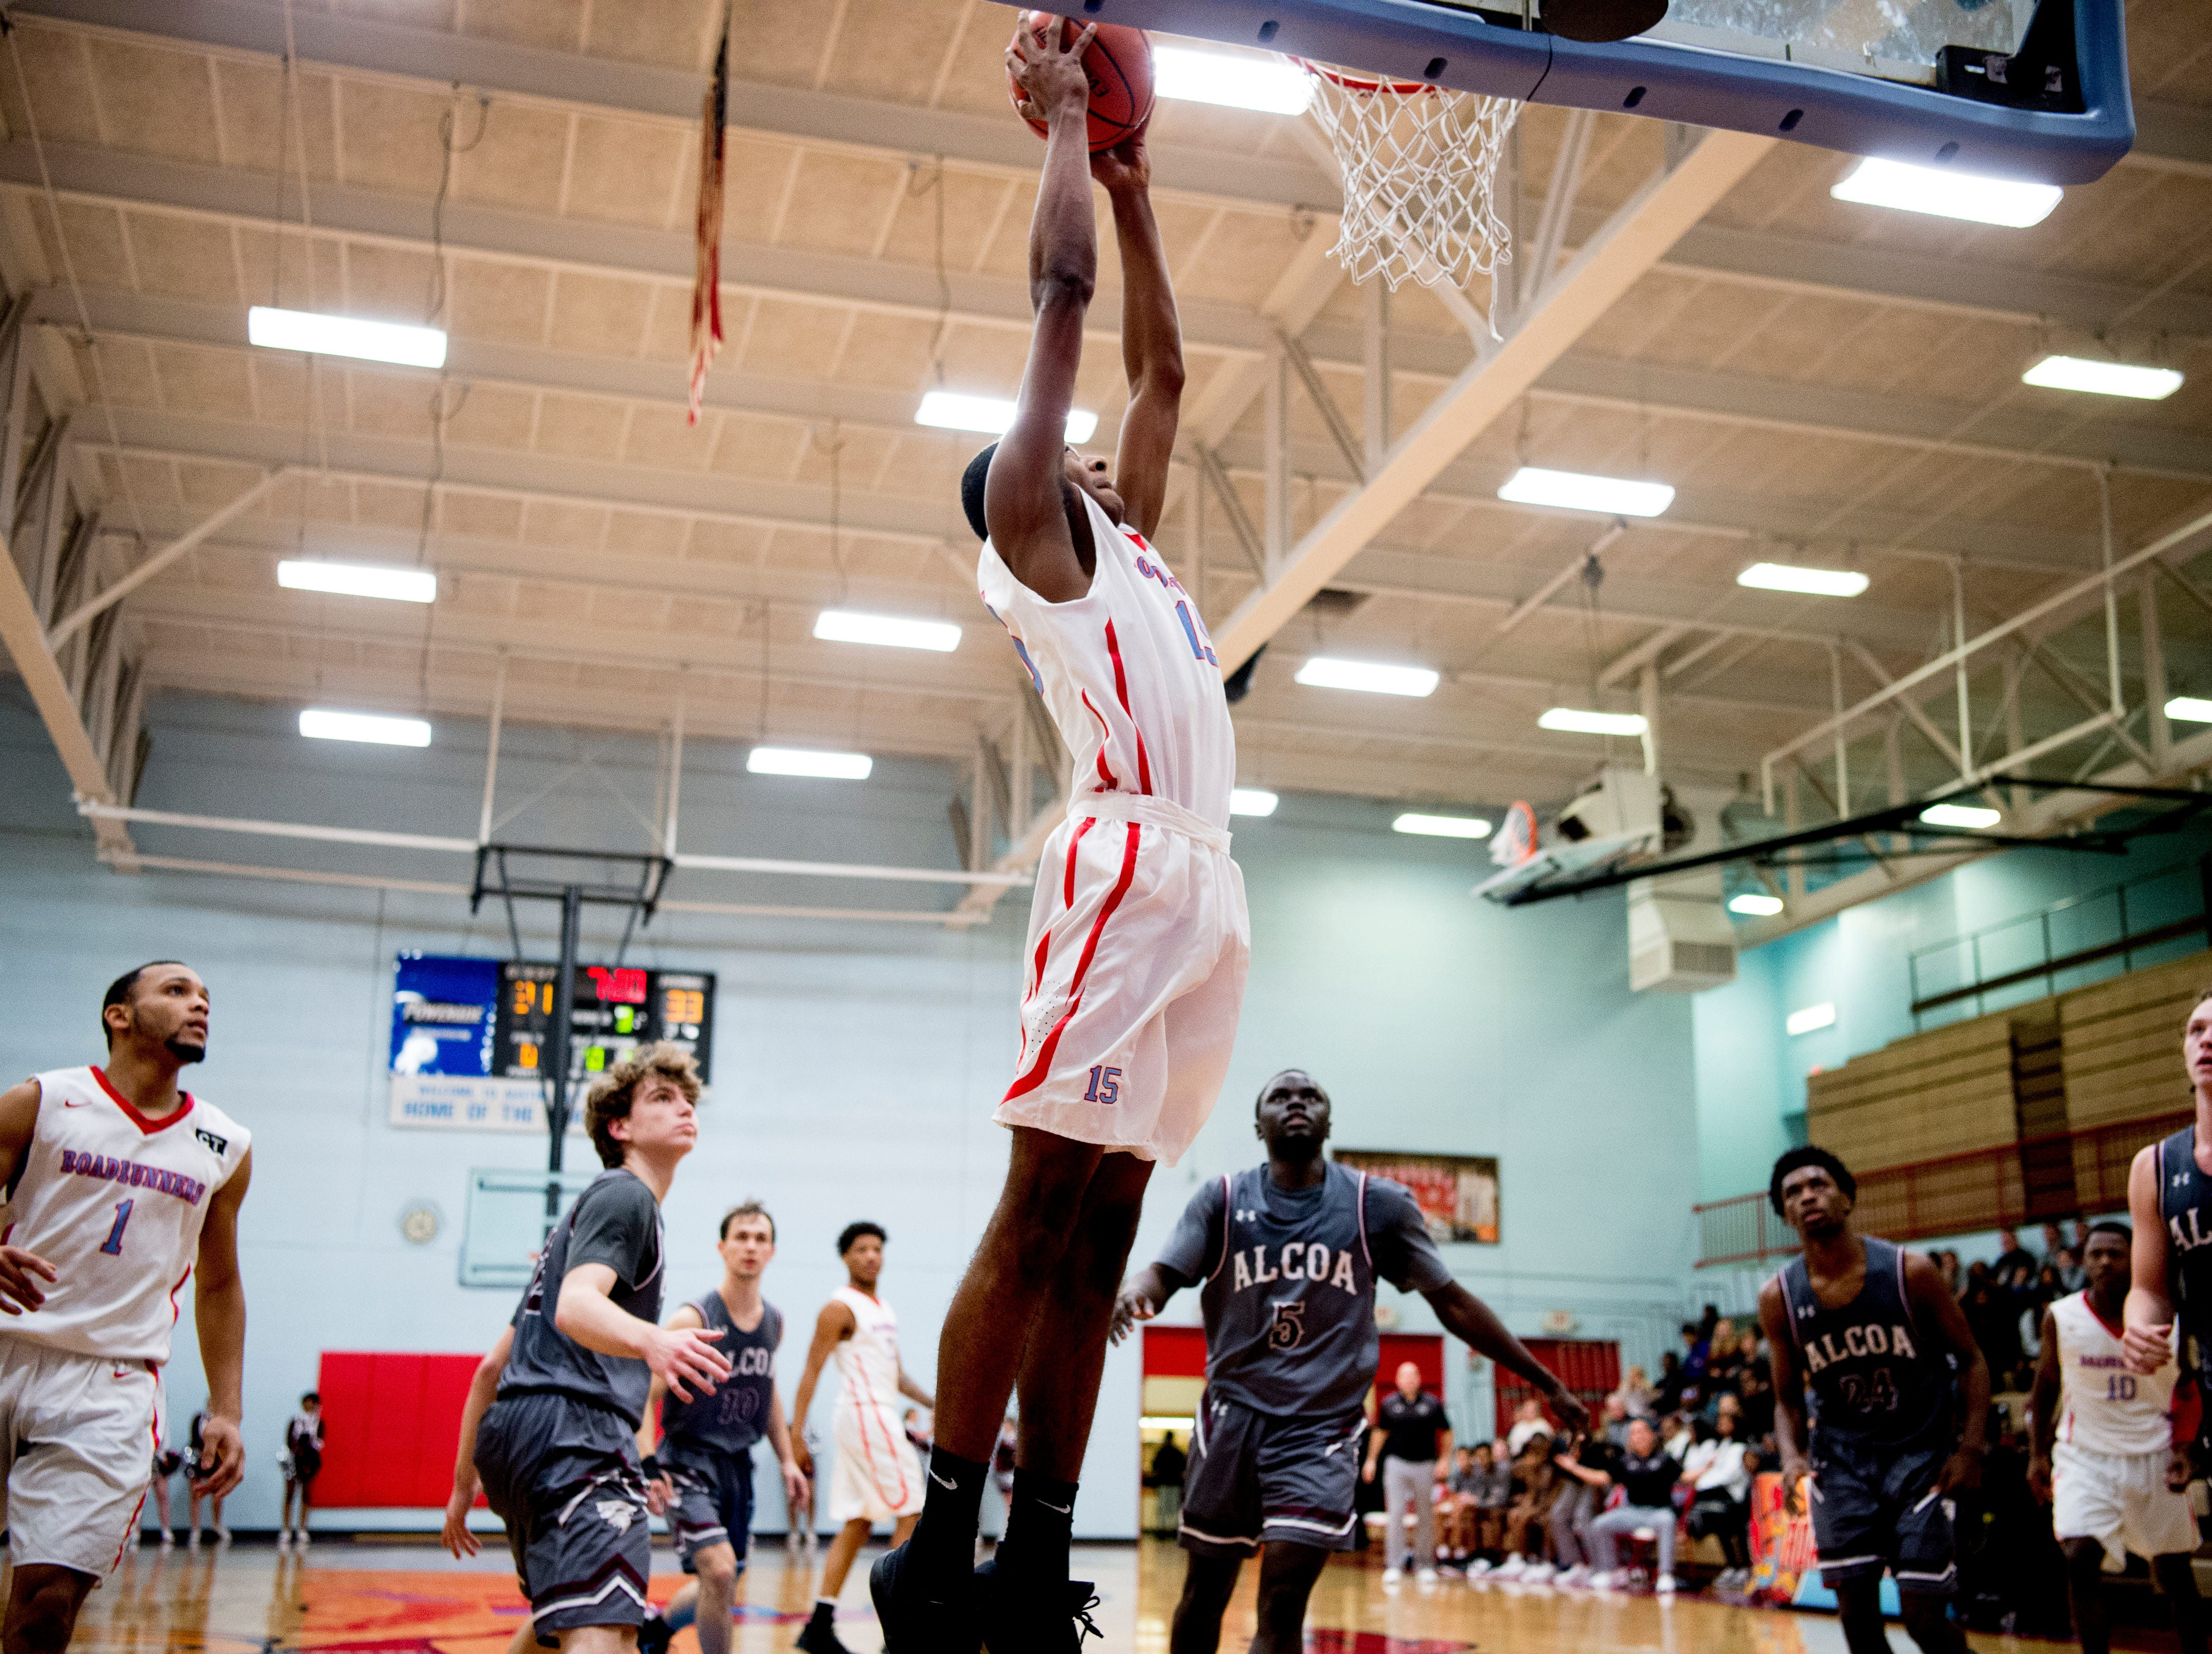 Austin-East's Ka'Juan Bullard (15) goes for a dunk during a game between Austin-East and Alcoa at Austin-East High School in Knoxville, Tennessee on Friday, January 18, 2019.